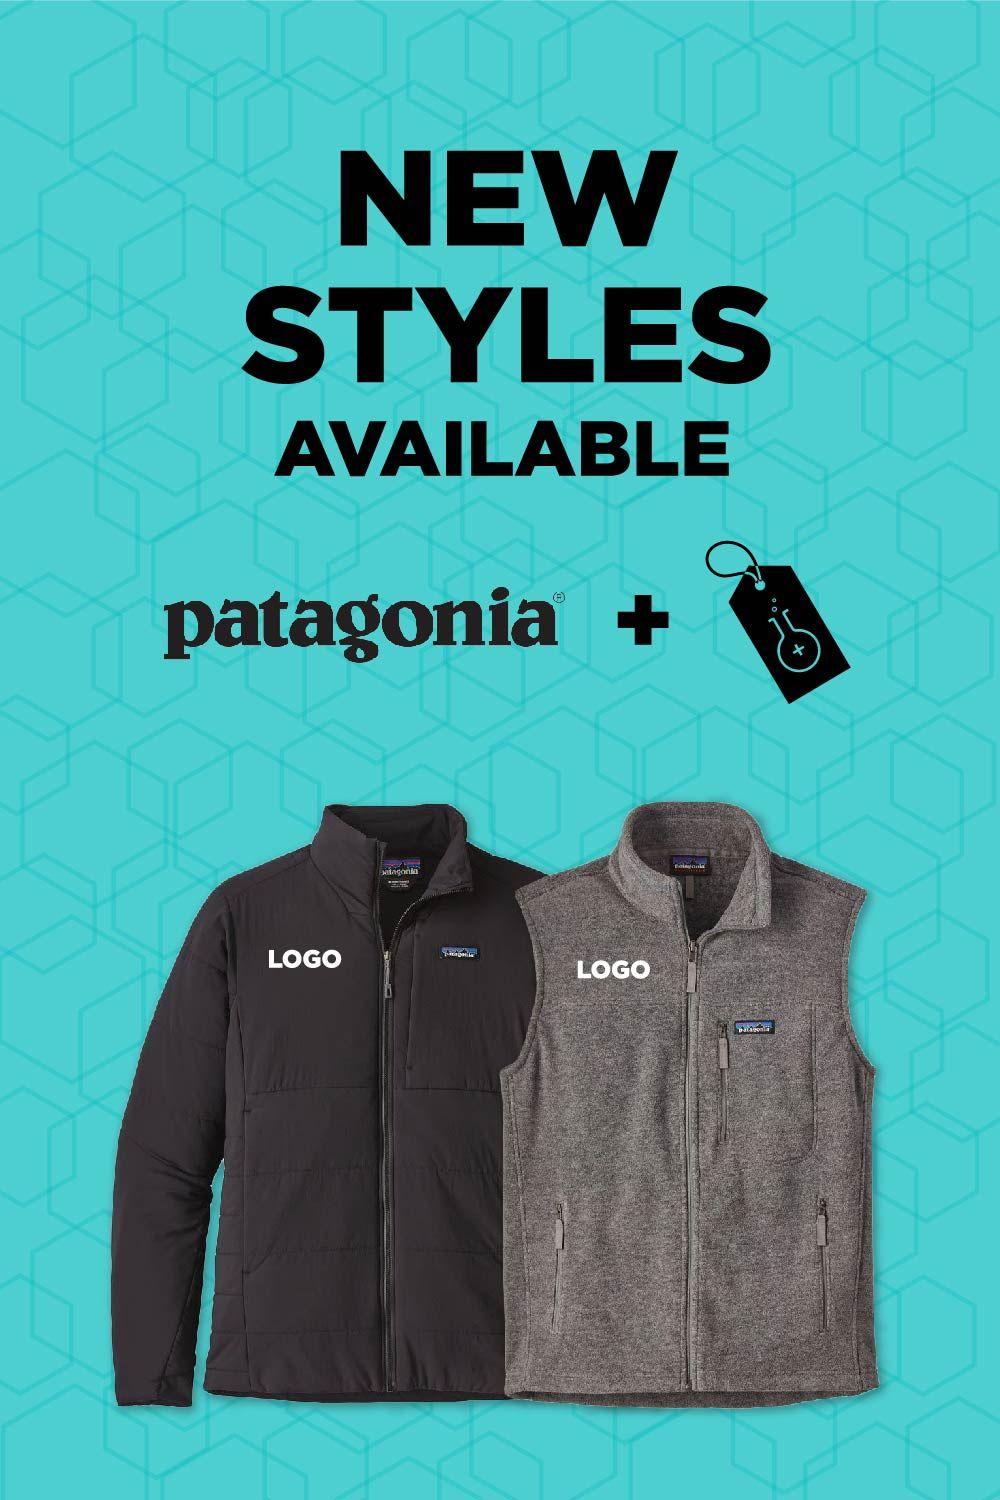 Revamp your corporate apparel collection with the hottest